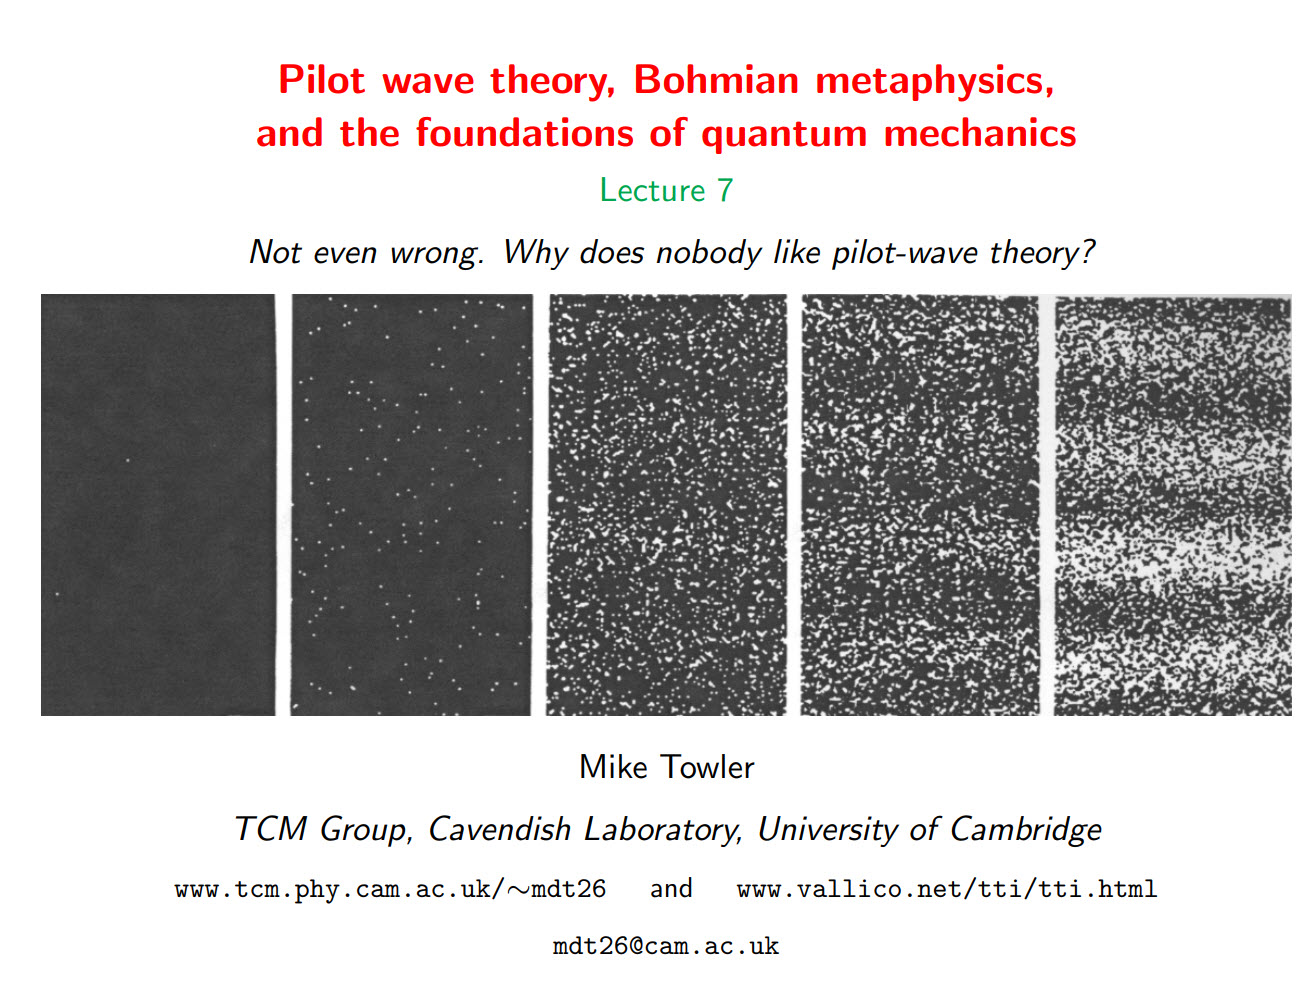 Not even wrong. Why does nobody like pilot-wave theory? Lecture 7